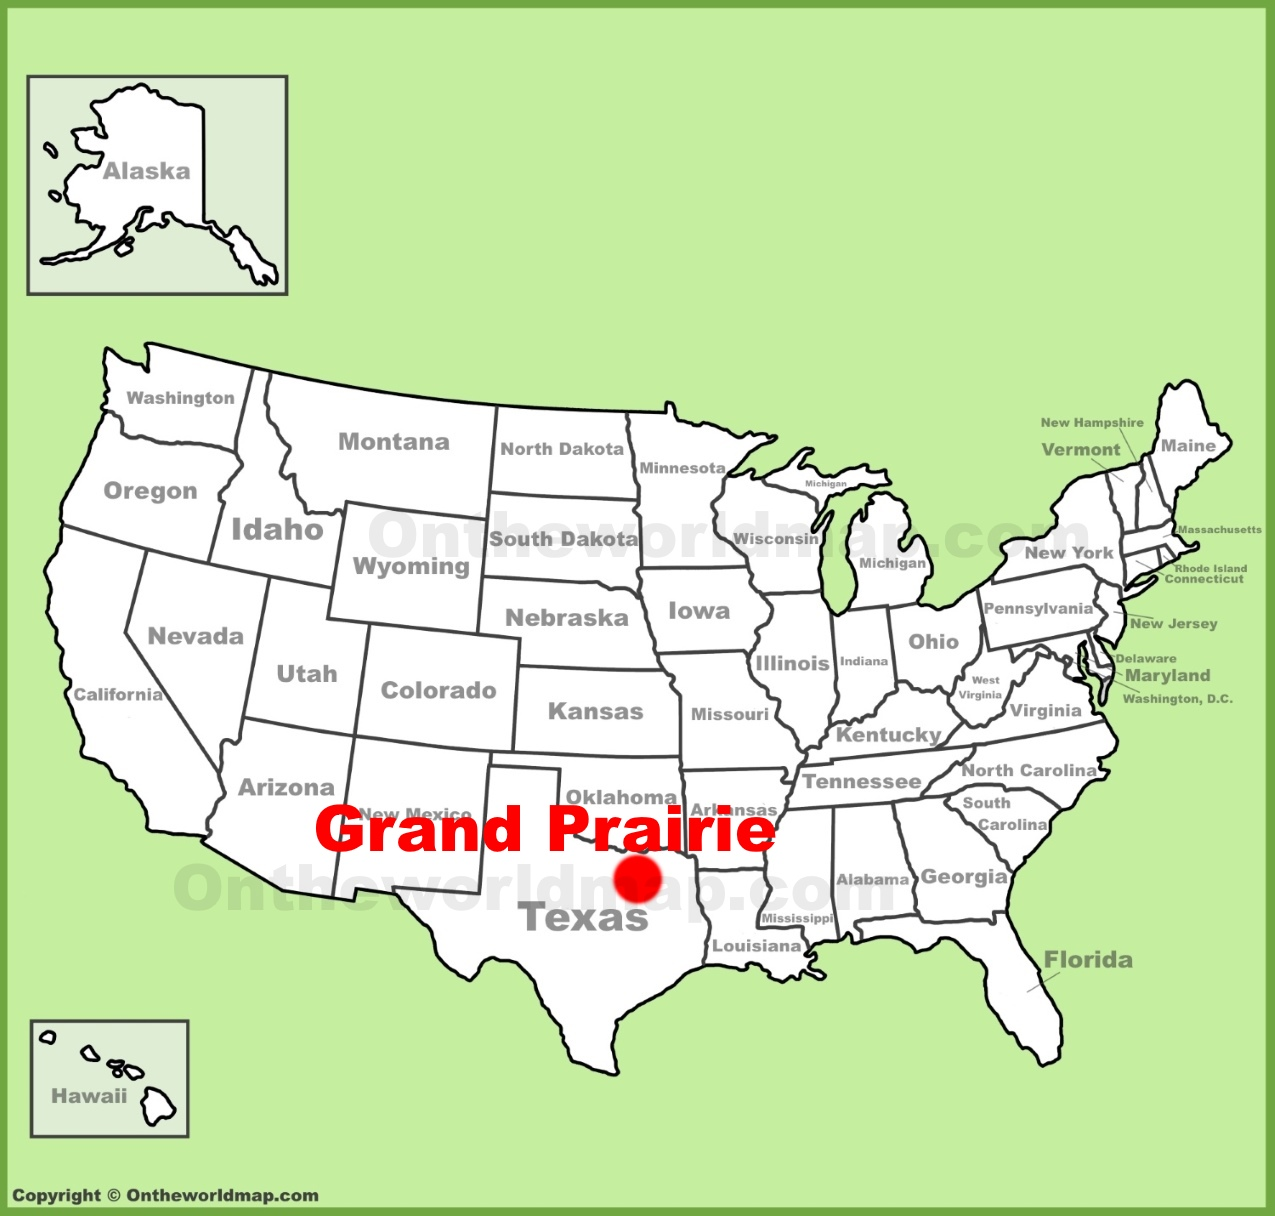 Grand Prairie location on the US Map